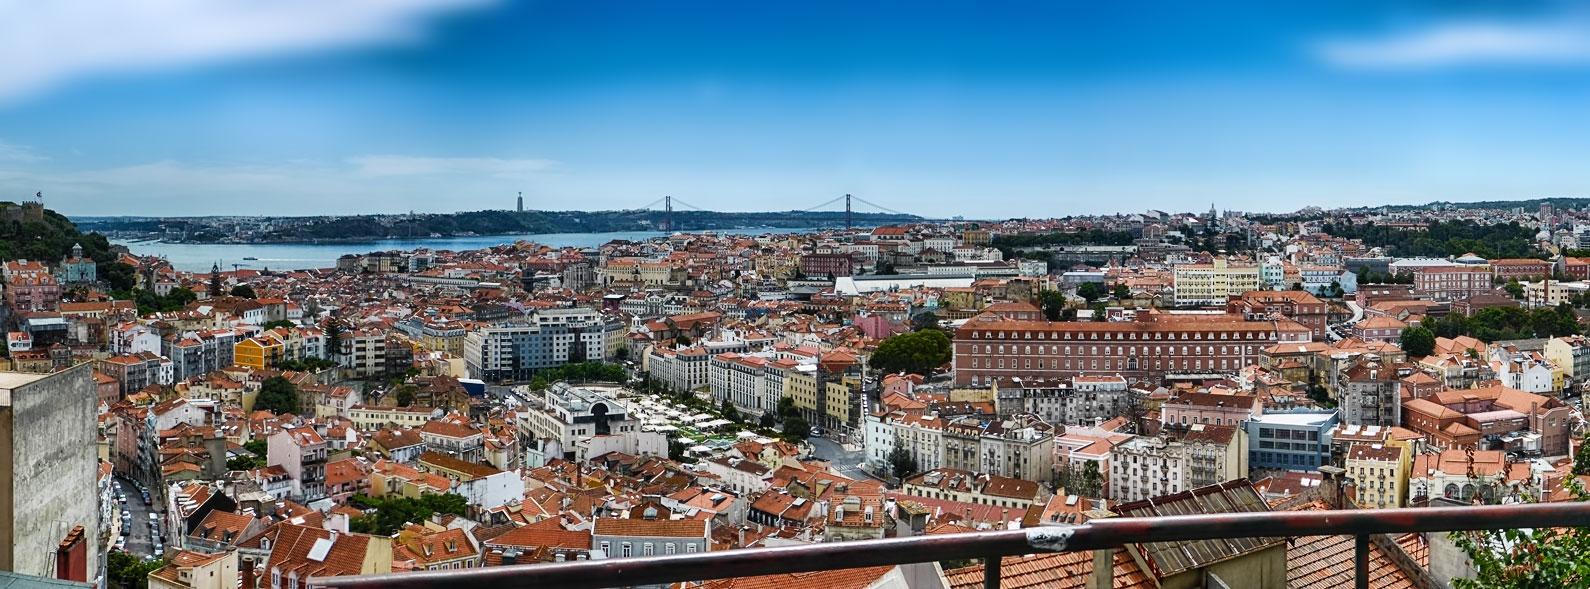 Miradouro Da Senhora Do Monte Graca Lisbon Viewpoints Portugal Travel Guide